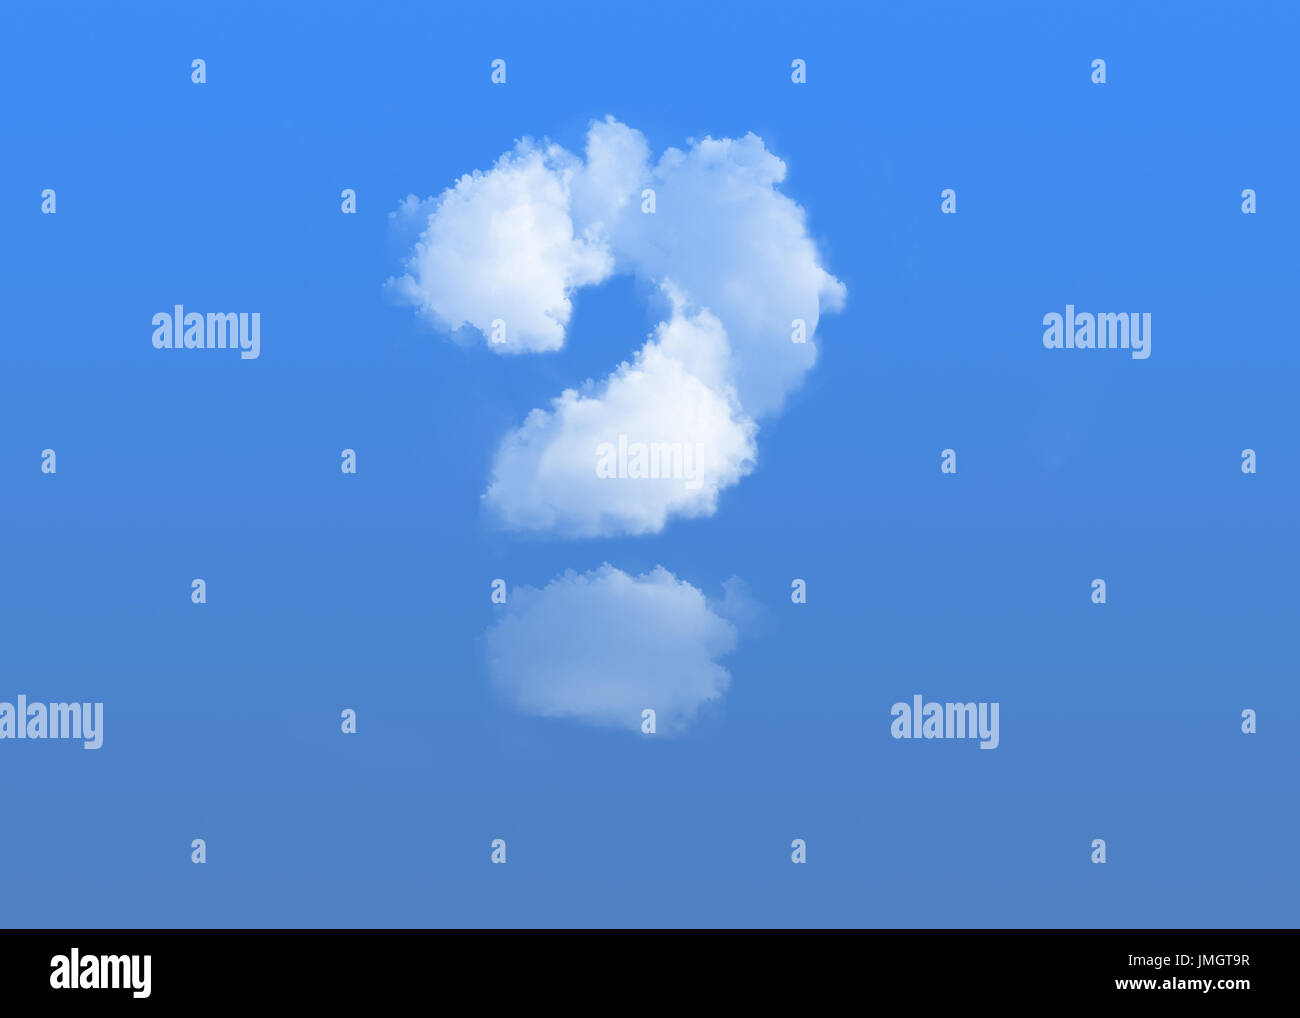 question mark  made of clouds on blue background - Stock Image